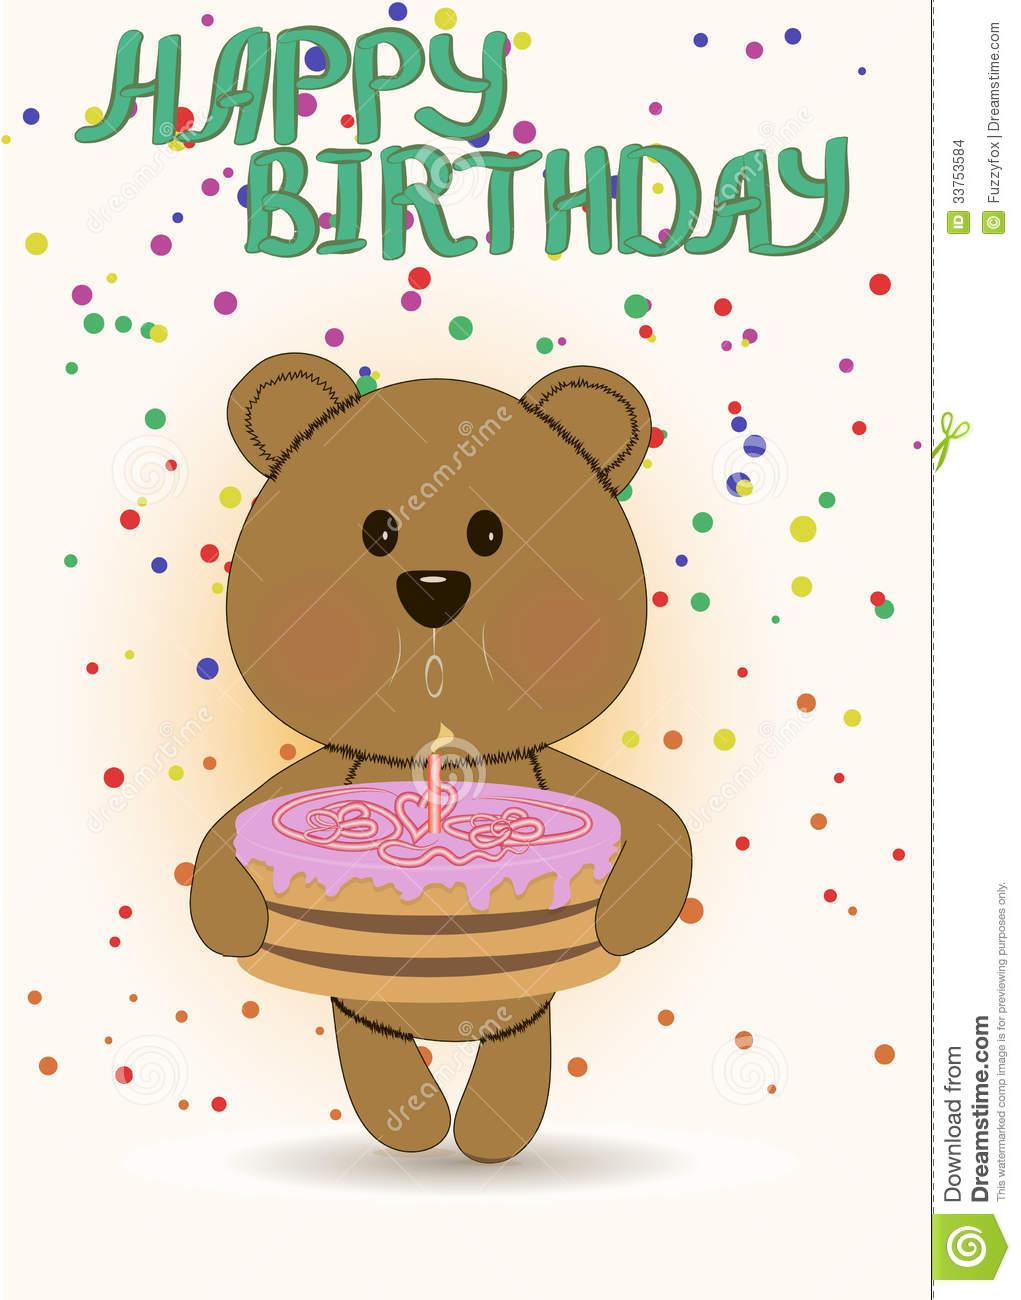 Happy Birthday Card With Cute Teddy Bear Stock Illustration